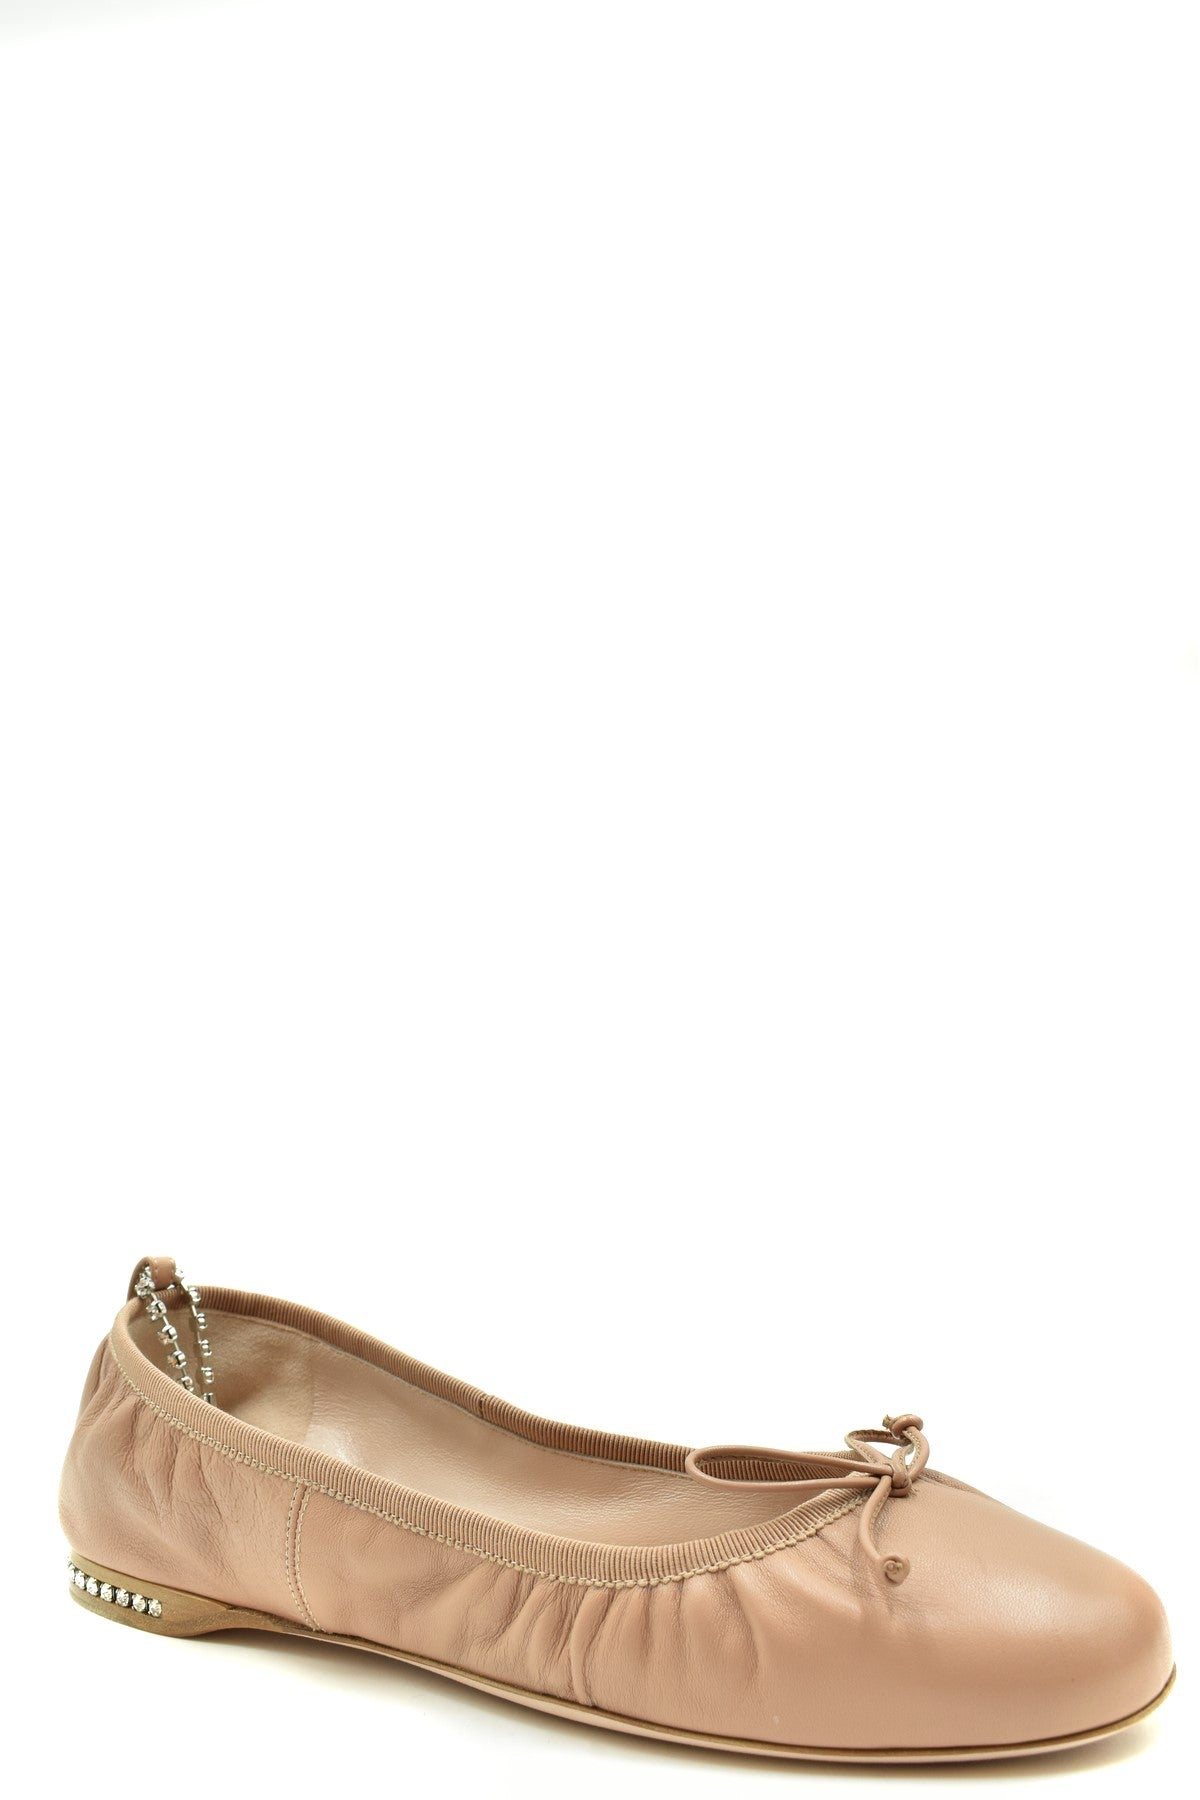 Shoes Miu Miu-Women's Fashion - Women's Shoes - Women's Flats-Product Details Terms: New With LabelMain Color: Antique PinkType Of Accessory: ShoesSeason: Spring / SummerMade In: ItalyGender: WomanSize: EuComposition: Leather 100%Year: 2020Manufacturer Part Number: 5F916C 038-Keyomi-Sook